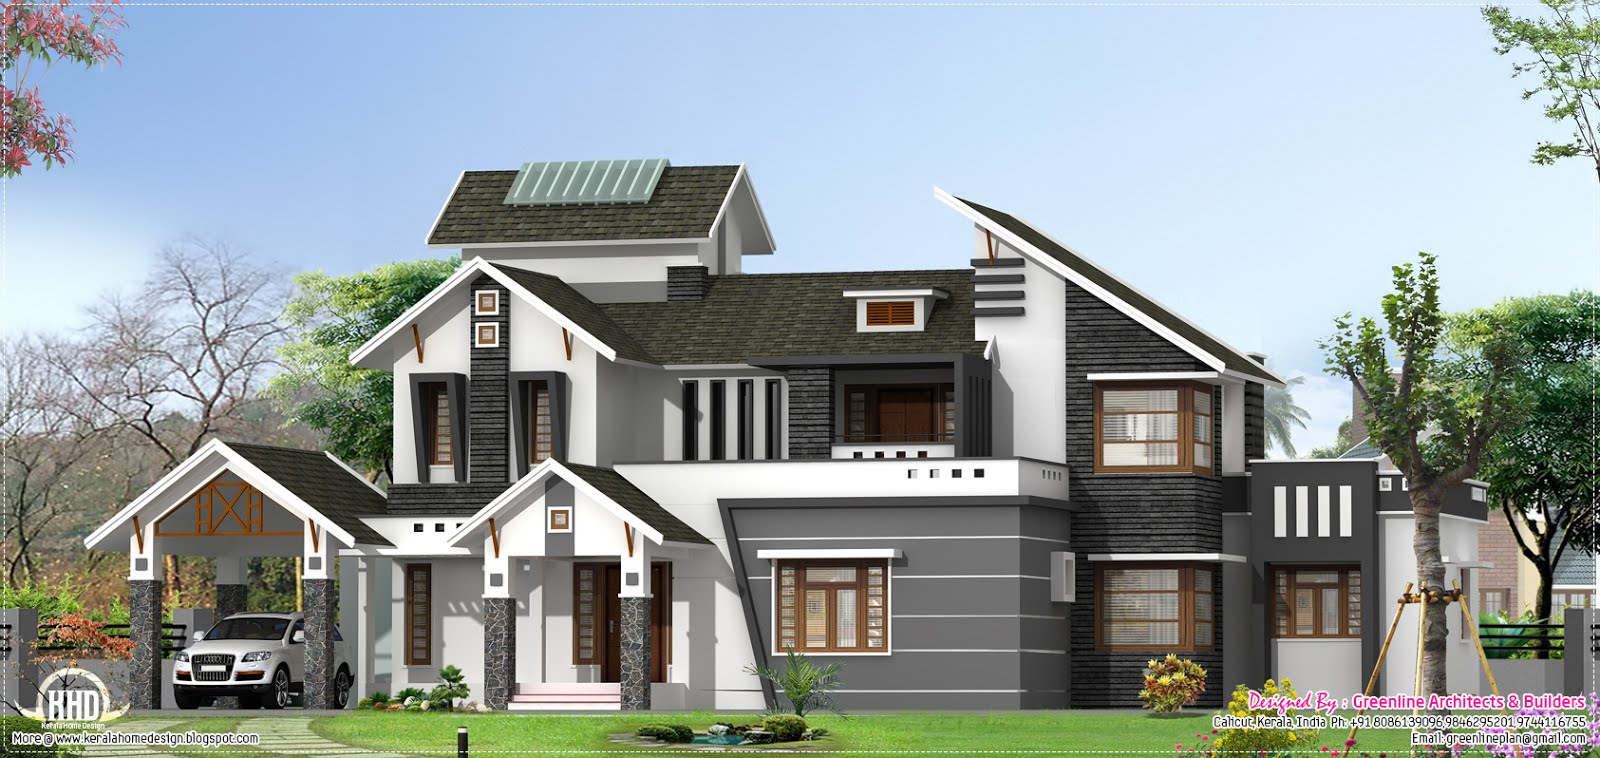 Modern 5 bedroom home design kerala home design and for House and design